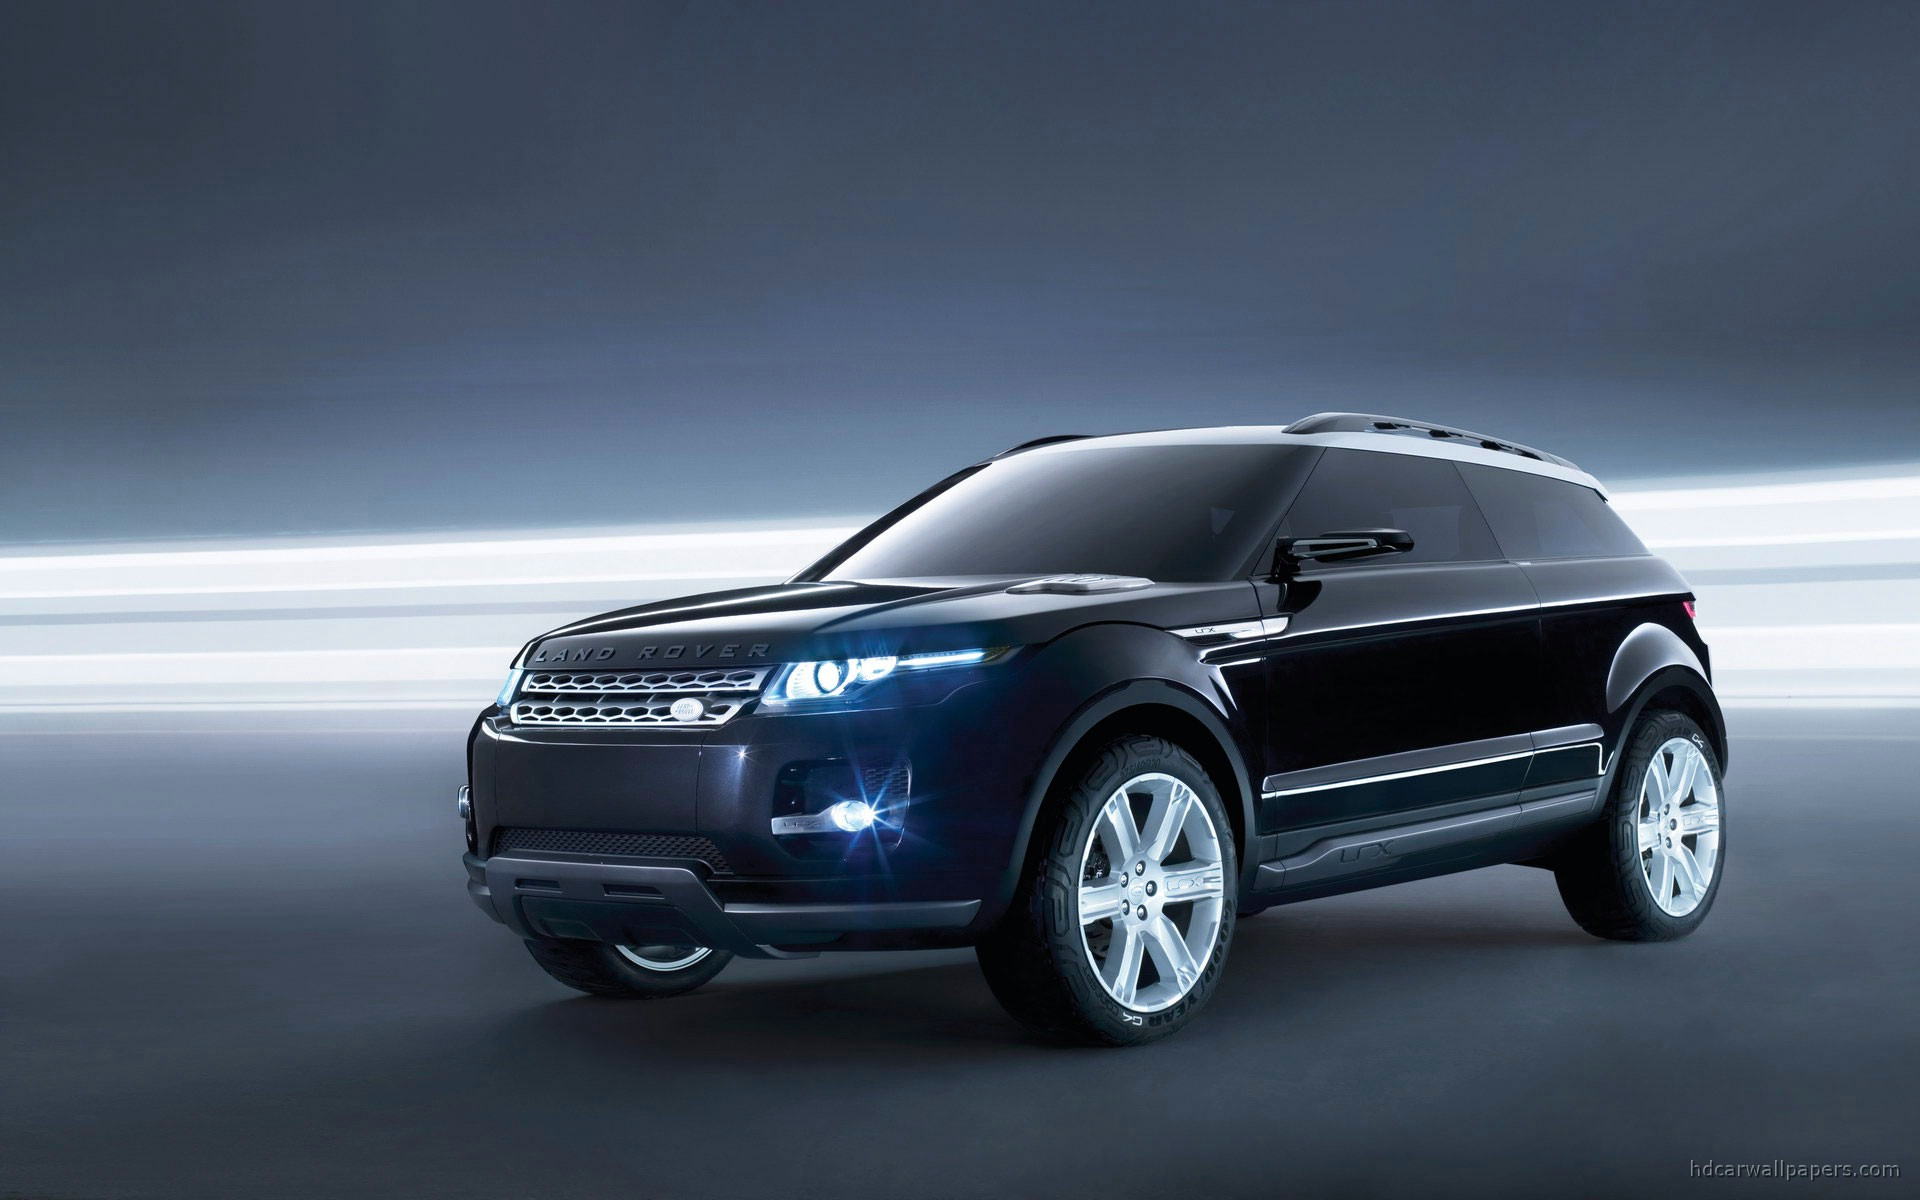 Land Rover LRX Concept Black 5 151.55 Kb